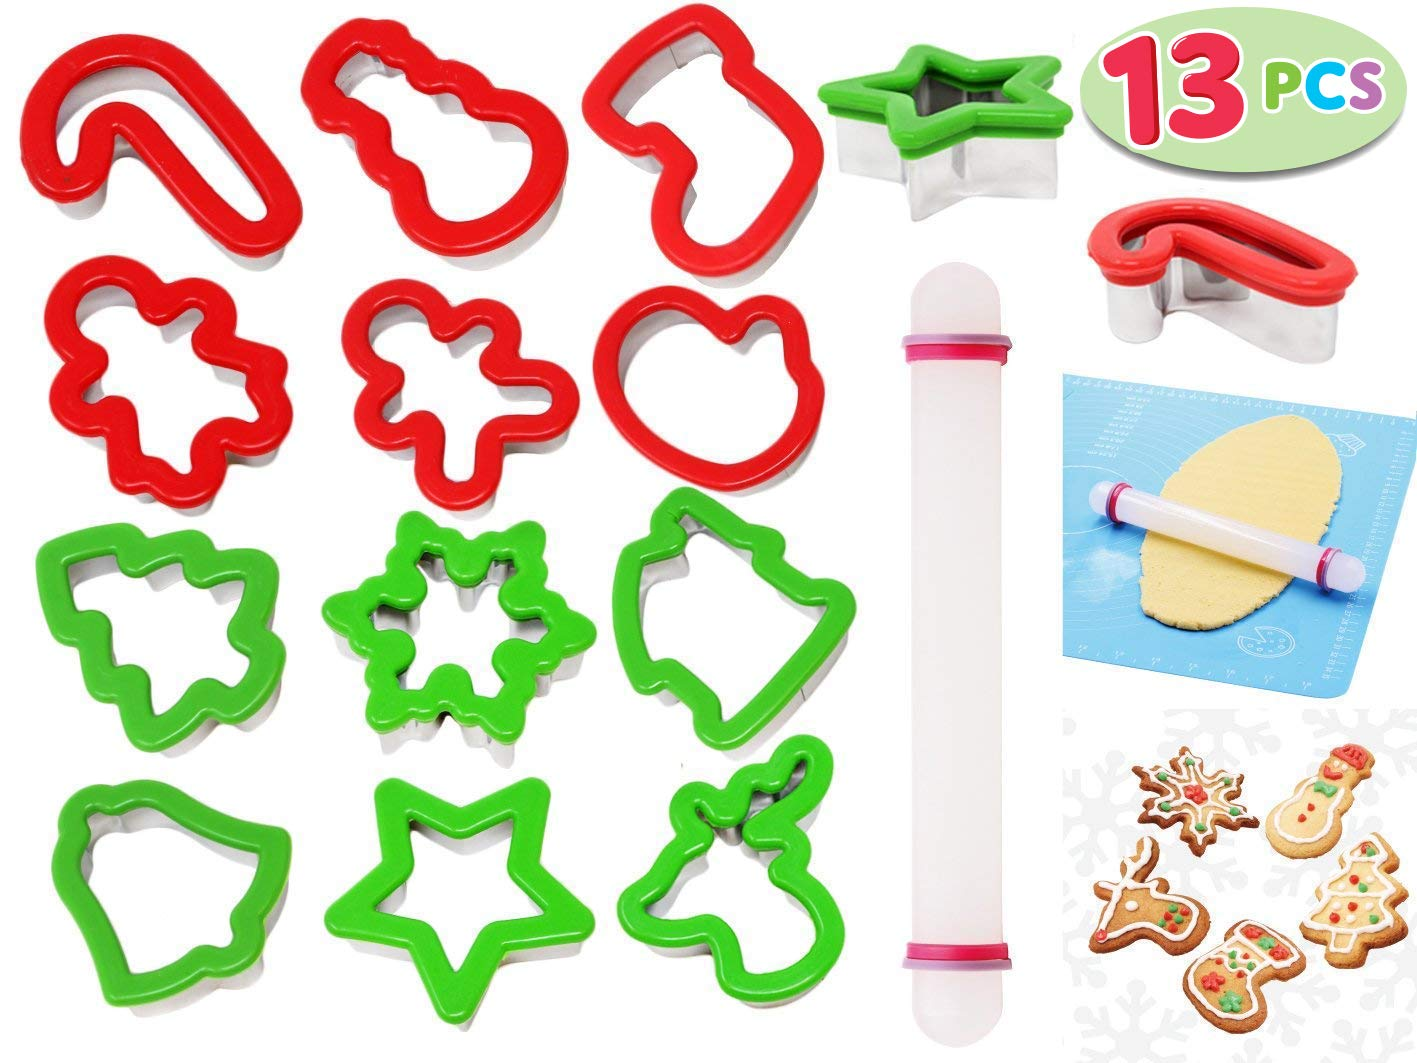 13 Pieces Stainless Steel Christmas Cookie Cutters with Comfort Grip